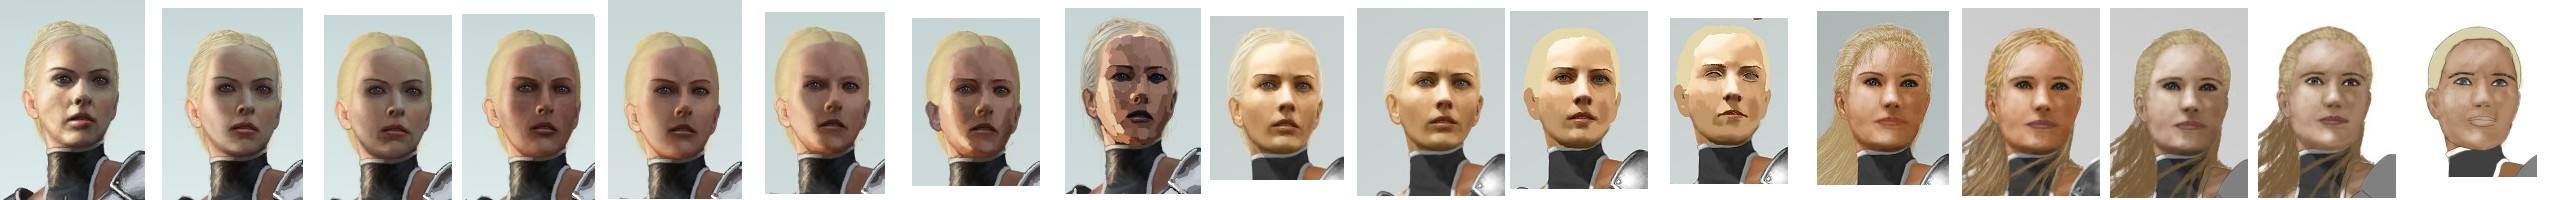 Face Evolution by Walter-NEST